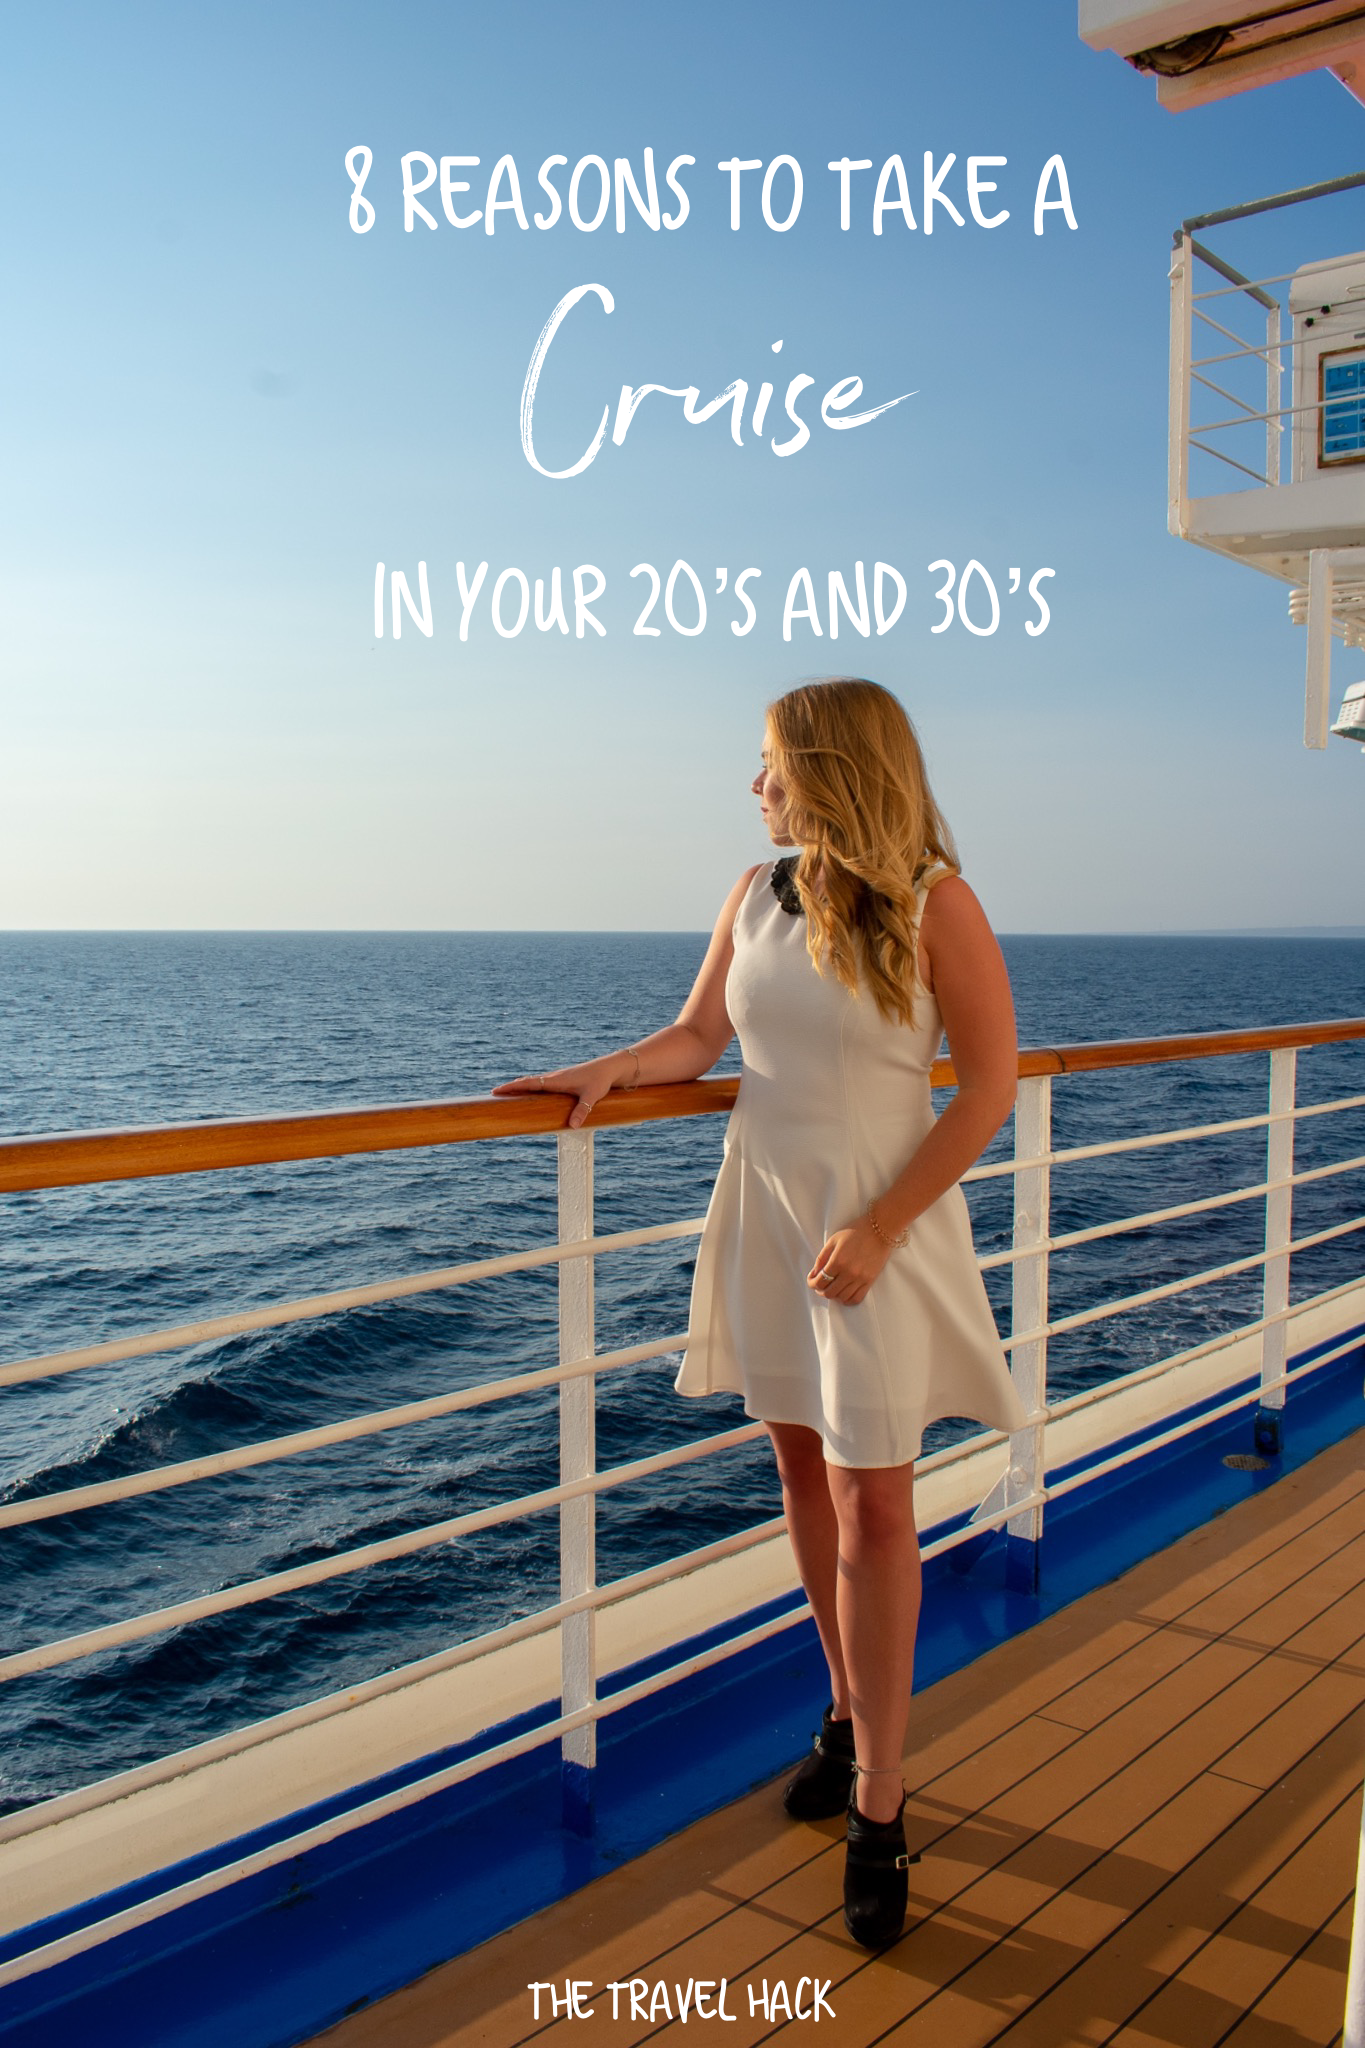 8 reasons why you should take a cruise in your 20's and 30's